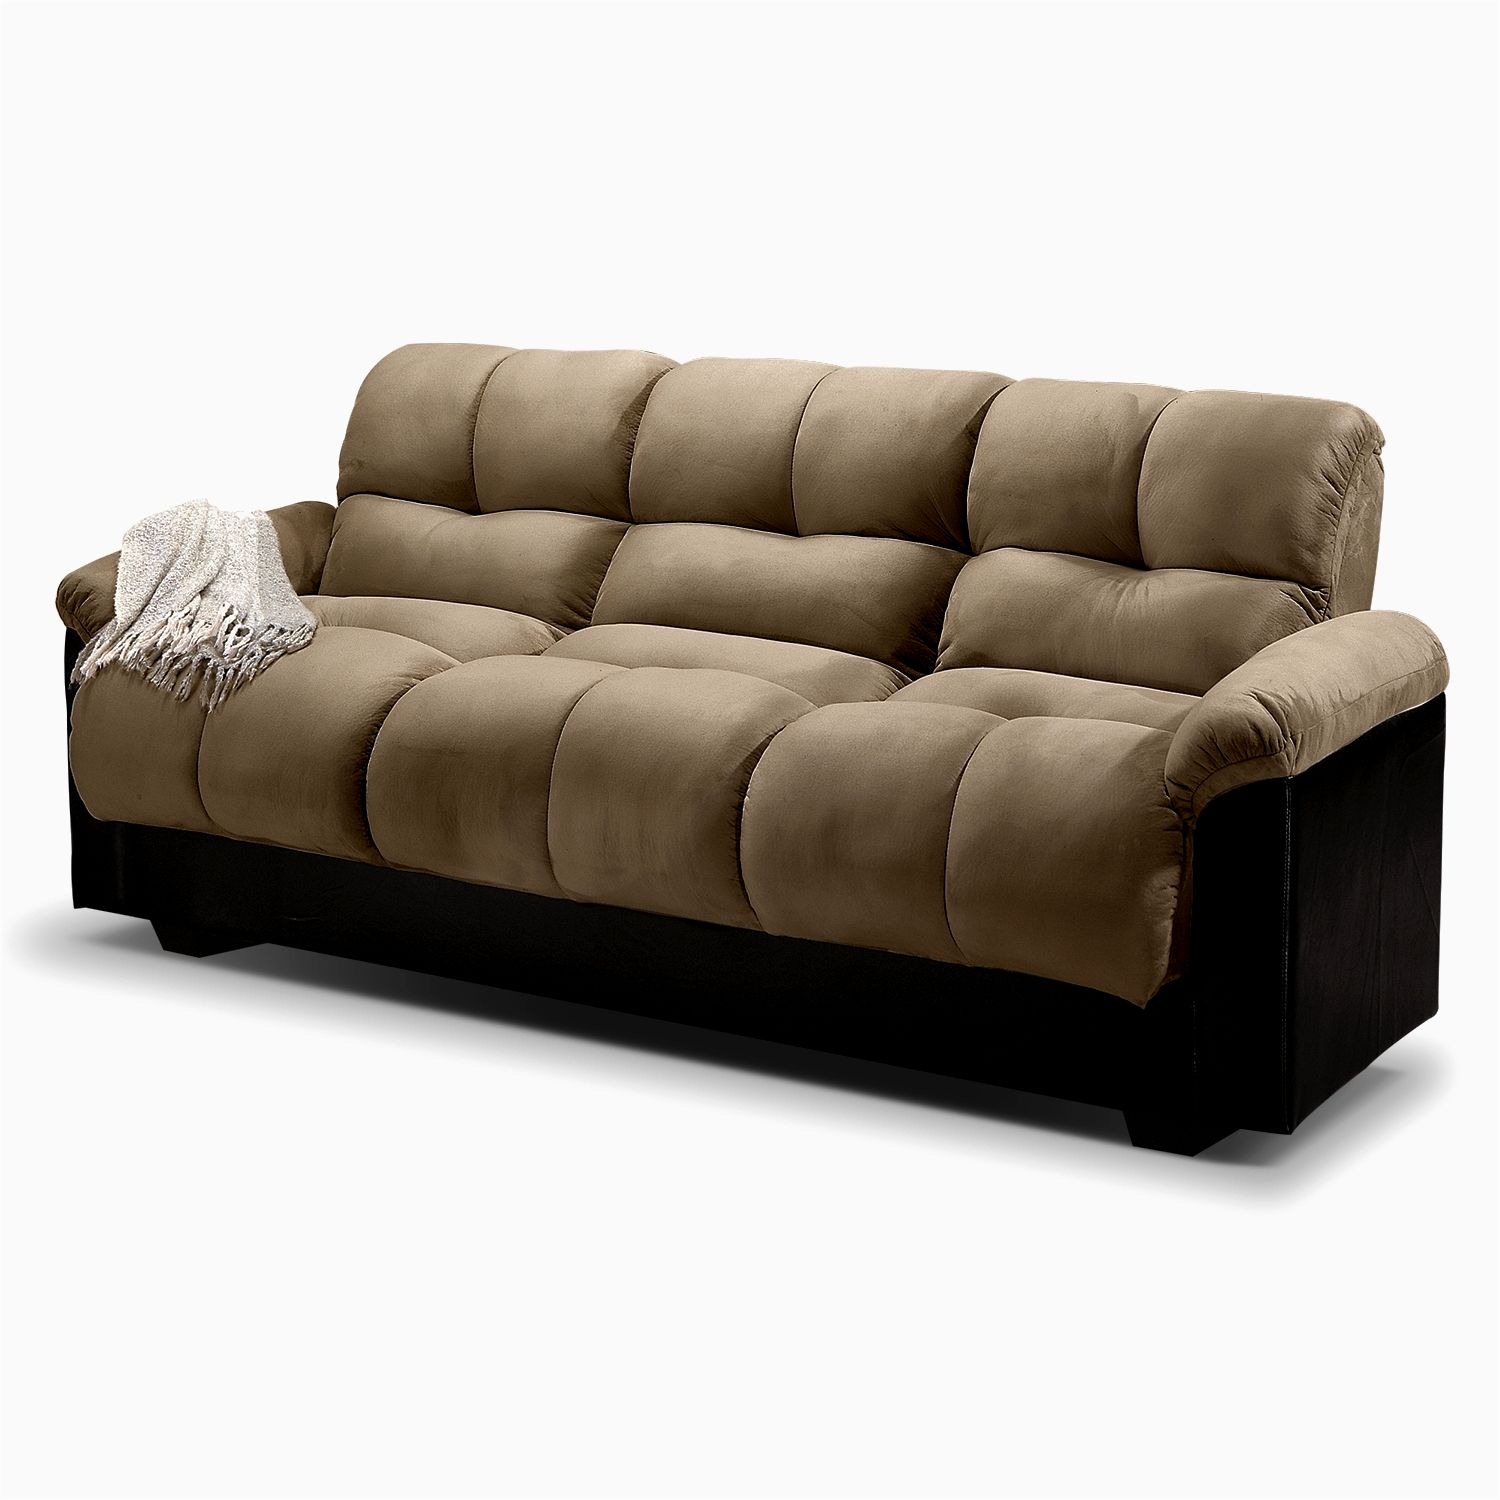 excellent sofa beds ikea decoration-Lovely sofa Beds Ikea Photograph